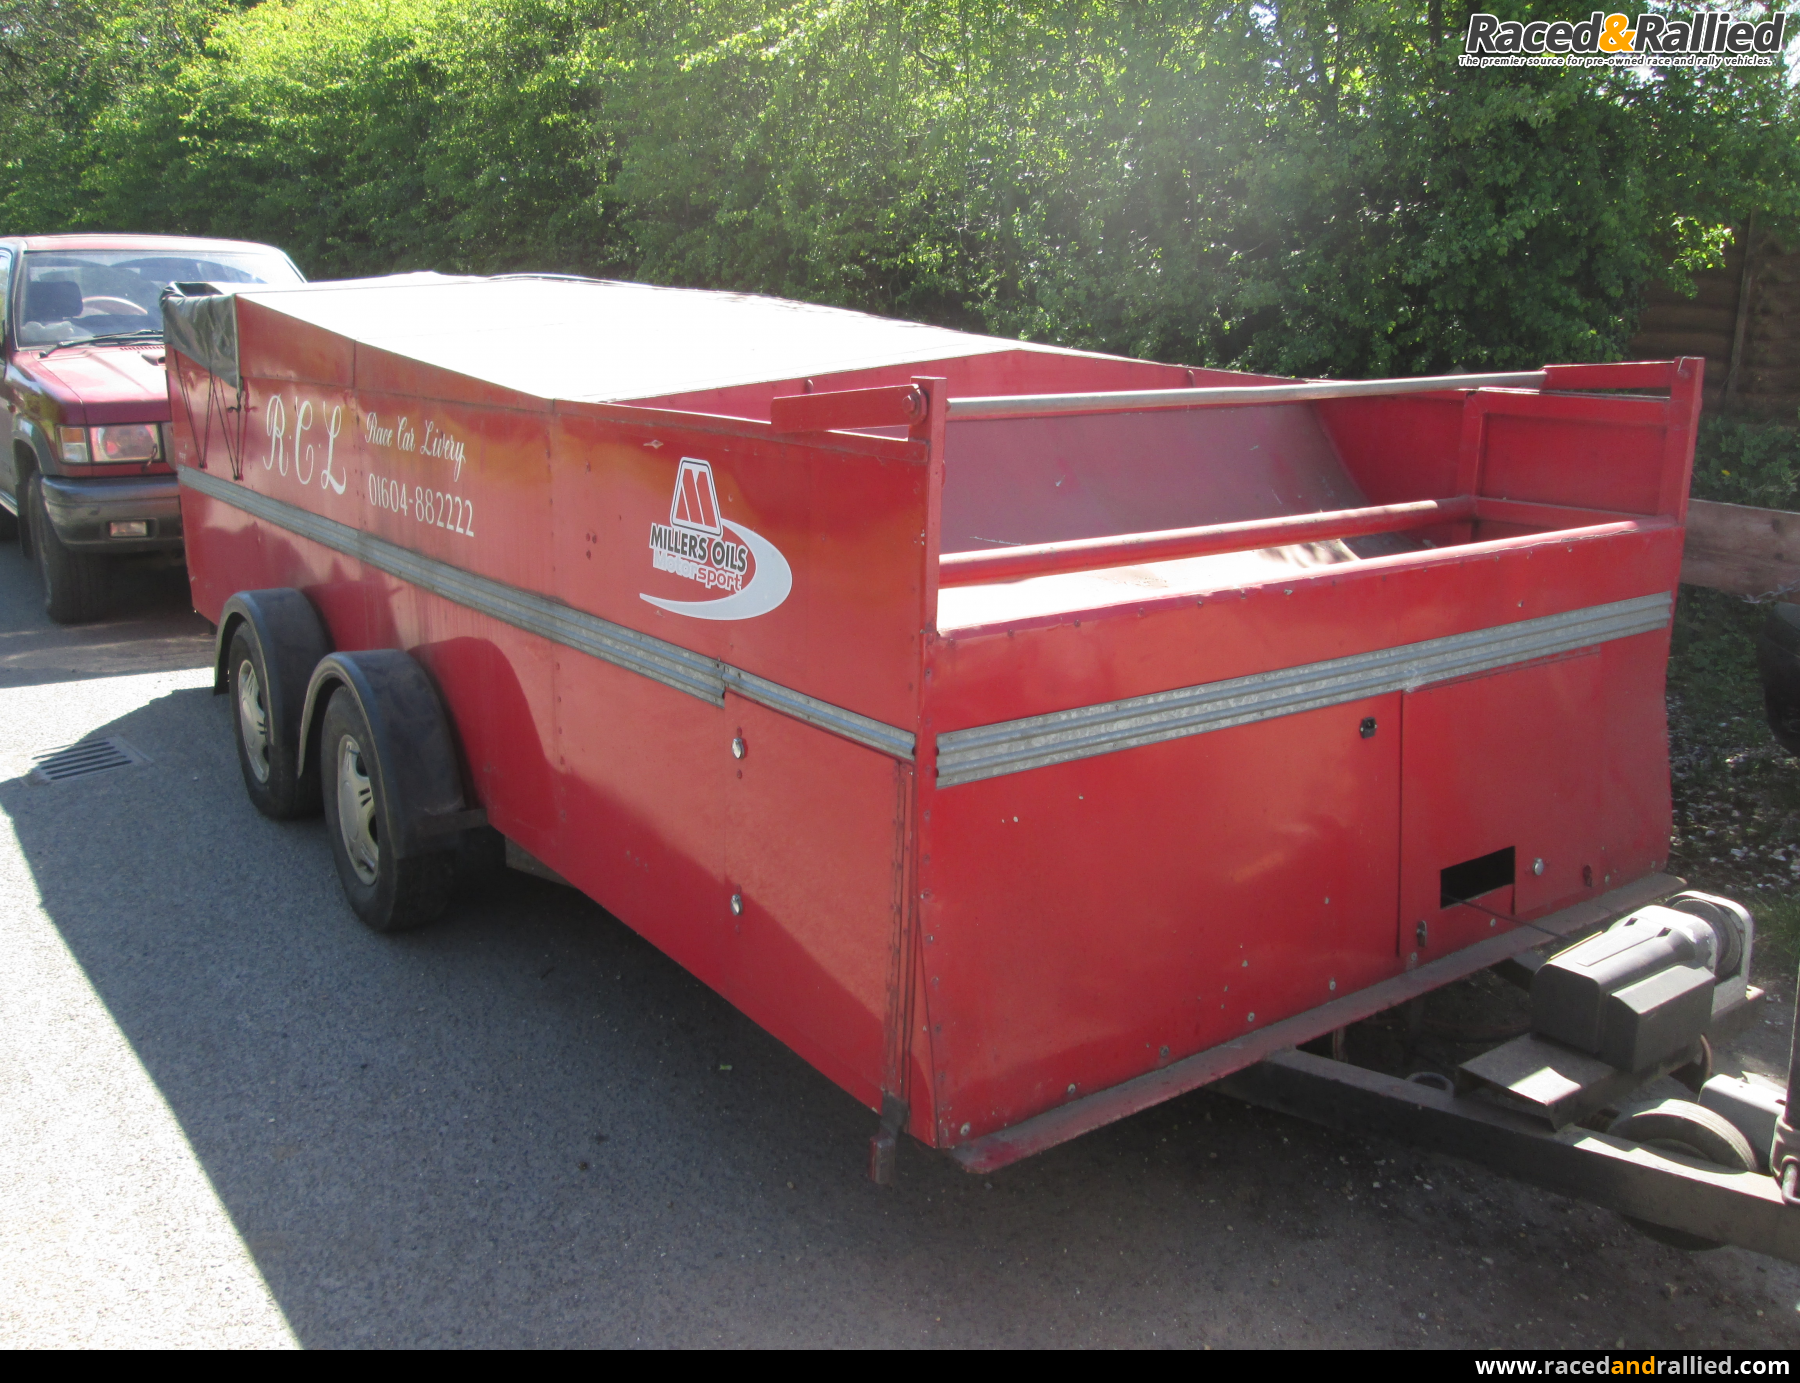 Auto For Sale For Sale: Trailers & Transporters For Sale At